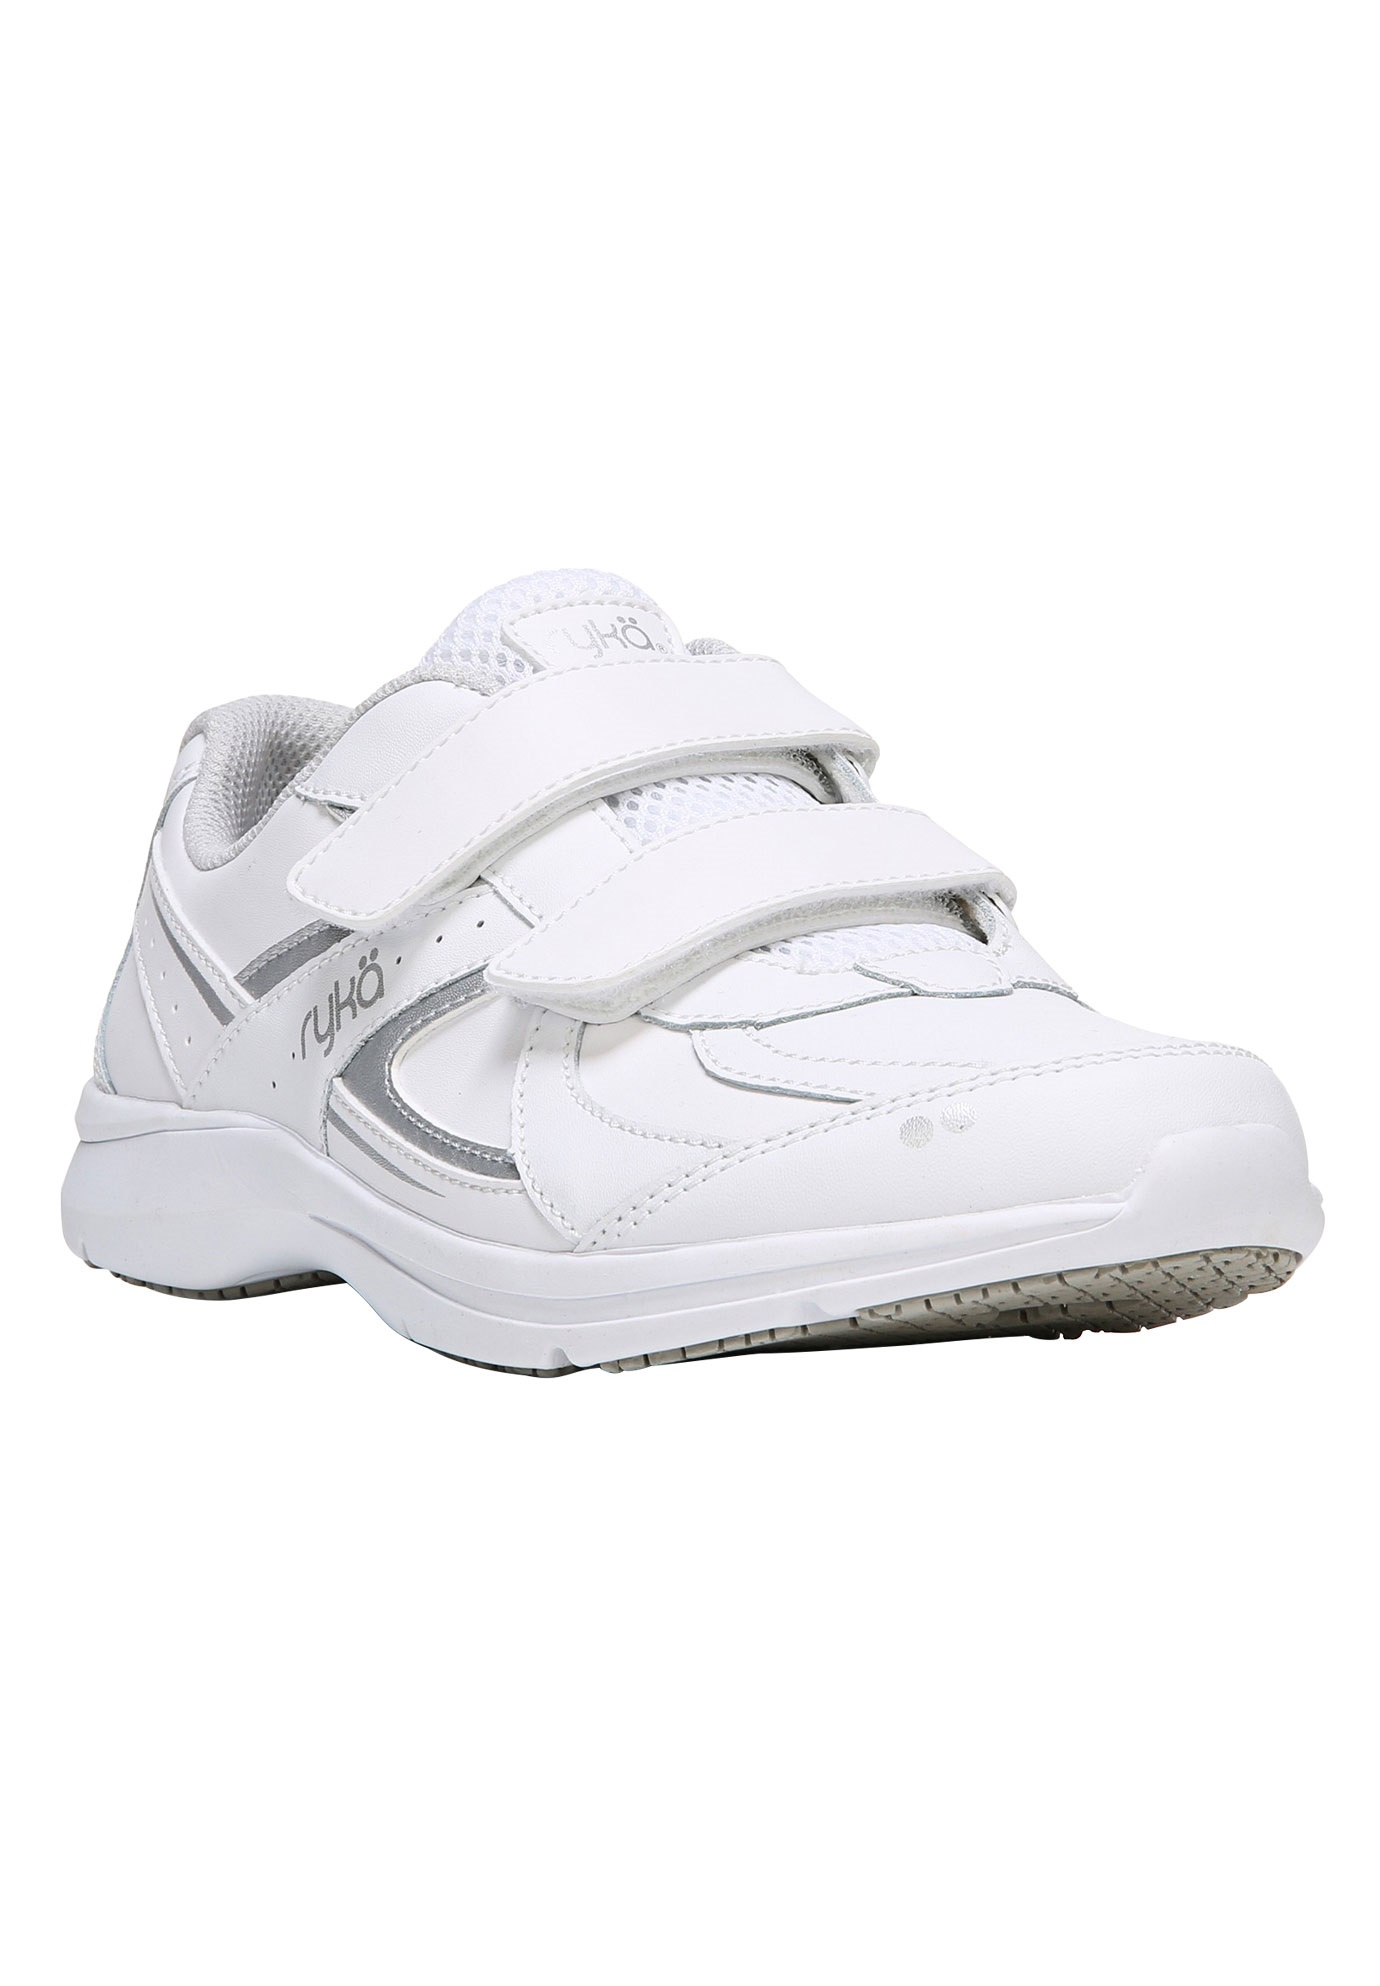 sale get to buy Sandria SR Sneakers by Ryka® cheap sale supply sale visit DYBOh